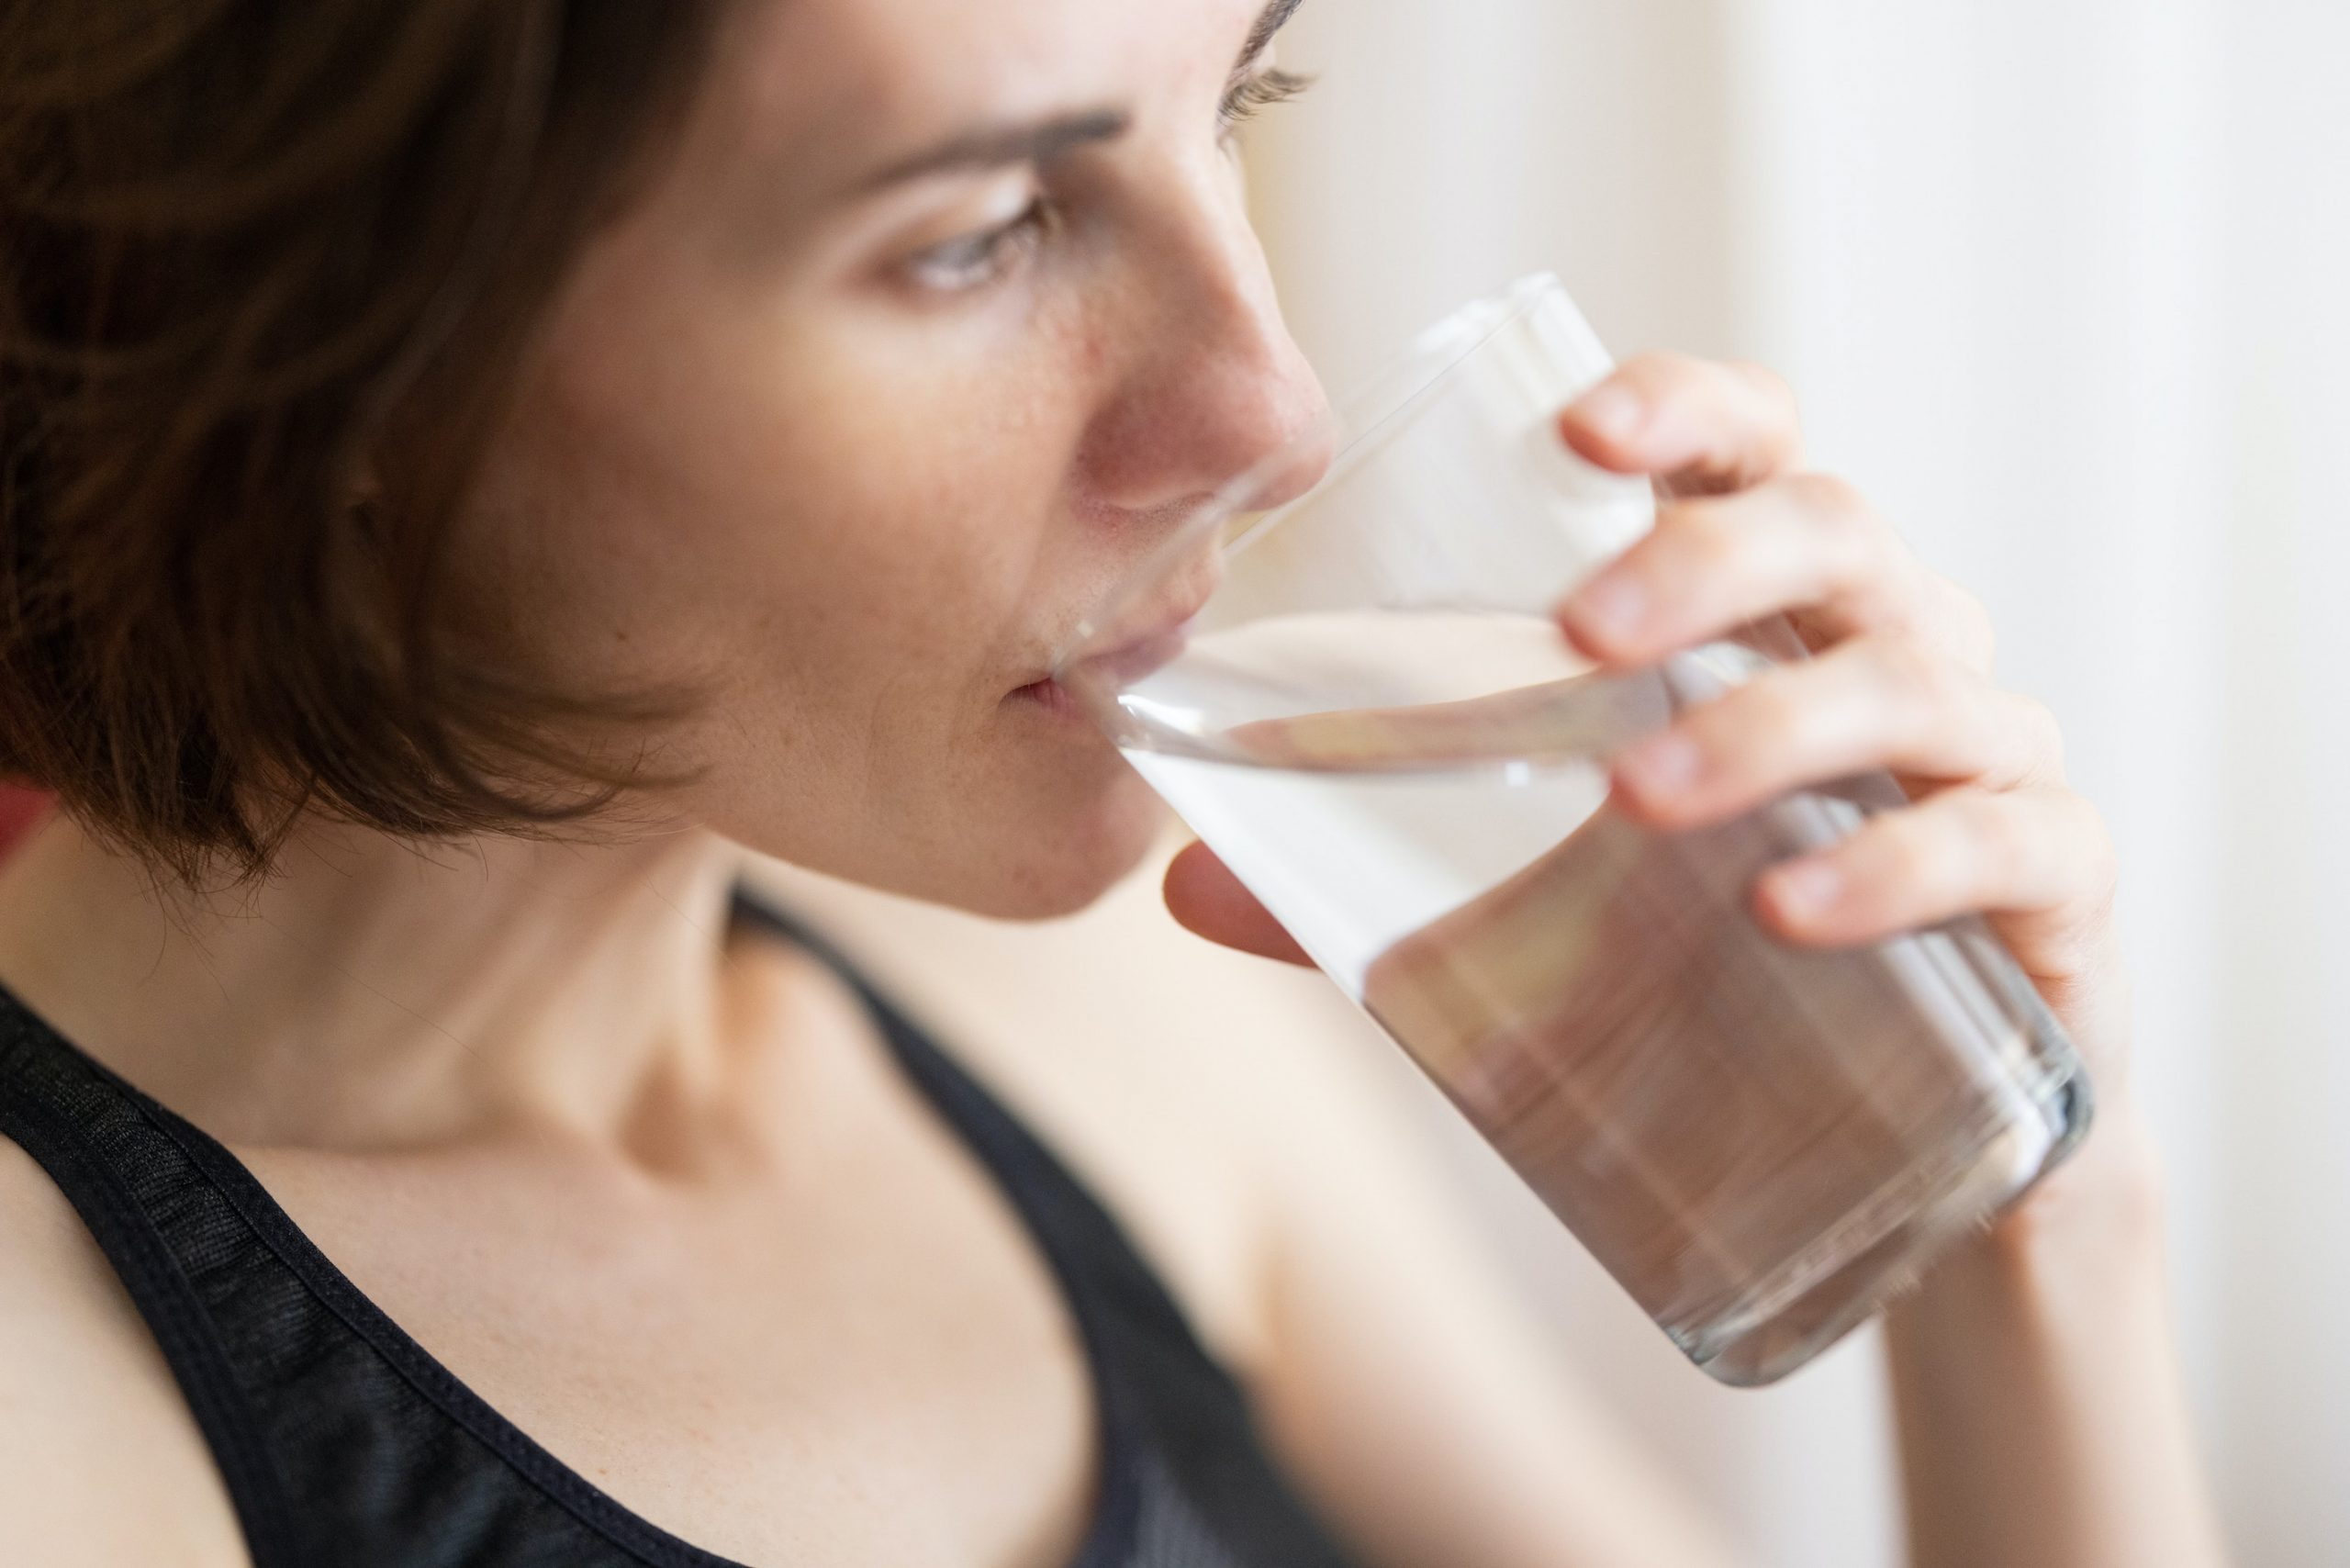 drinking water from glass